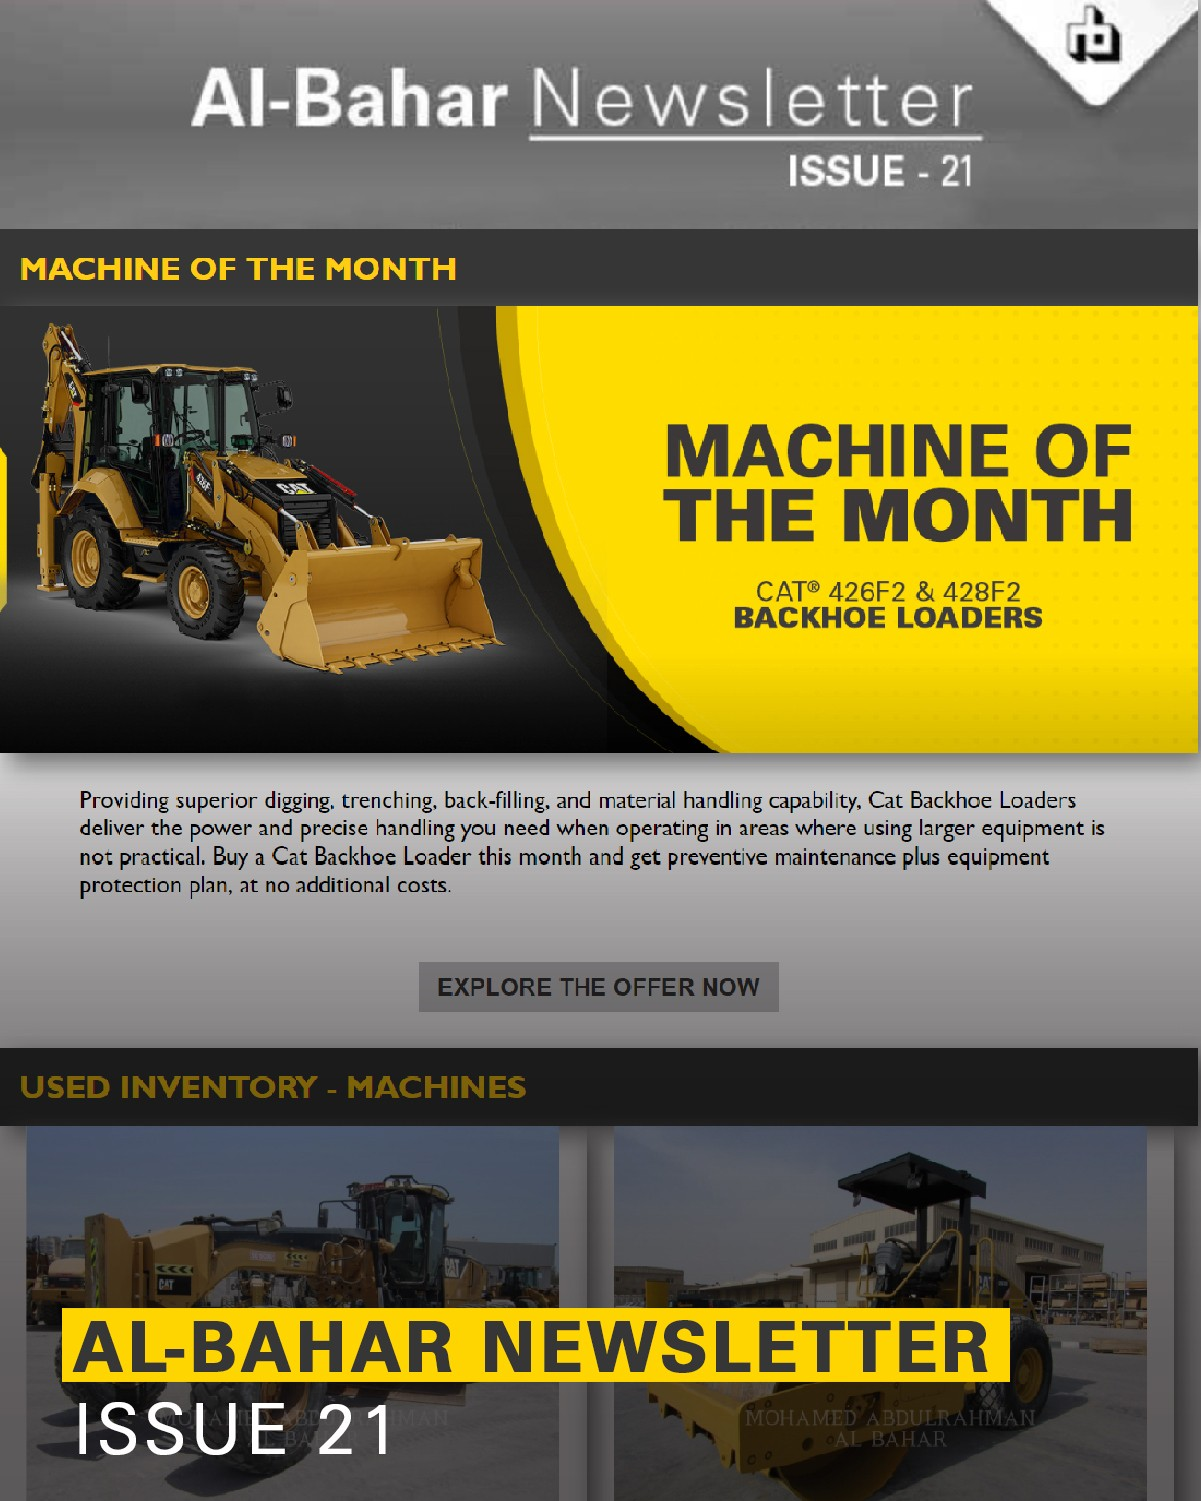 al-bahar-january-2019-newsletter